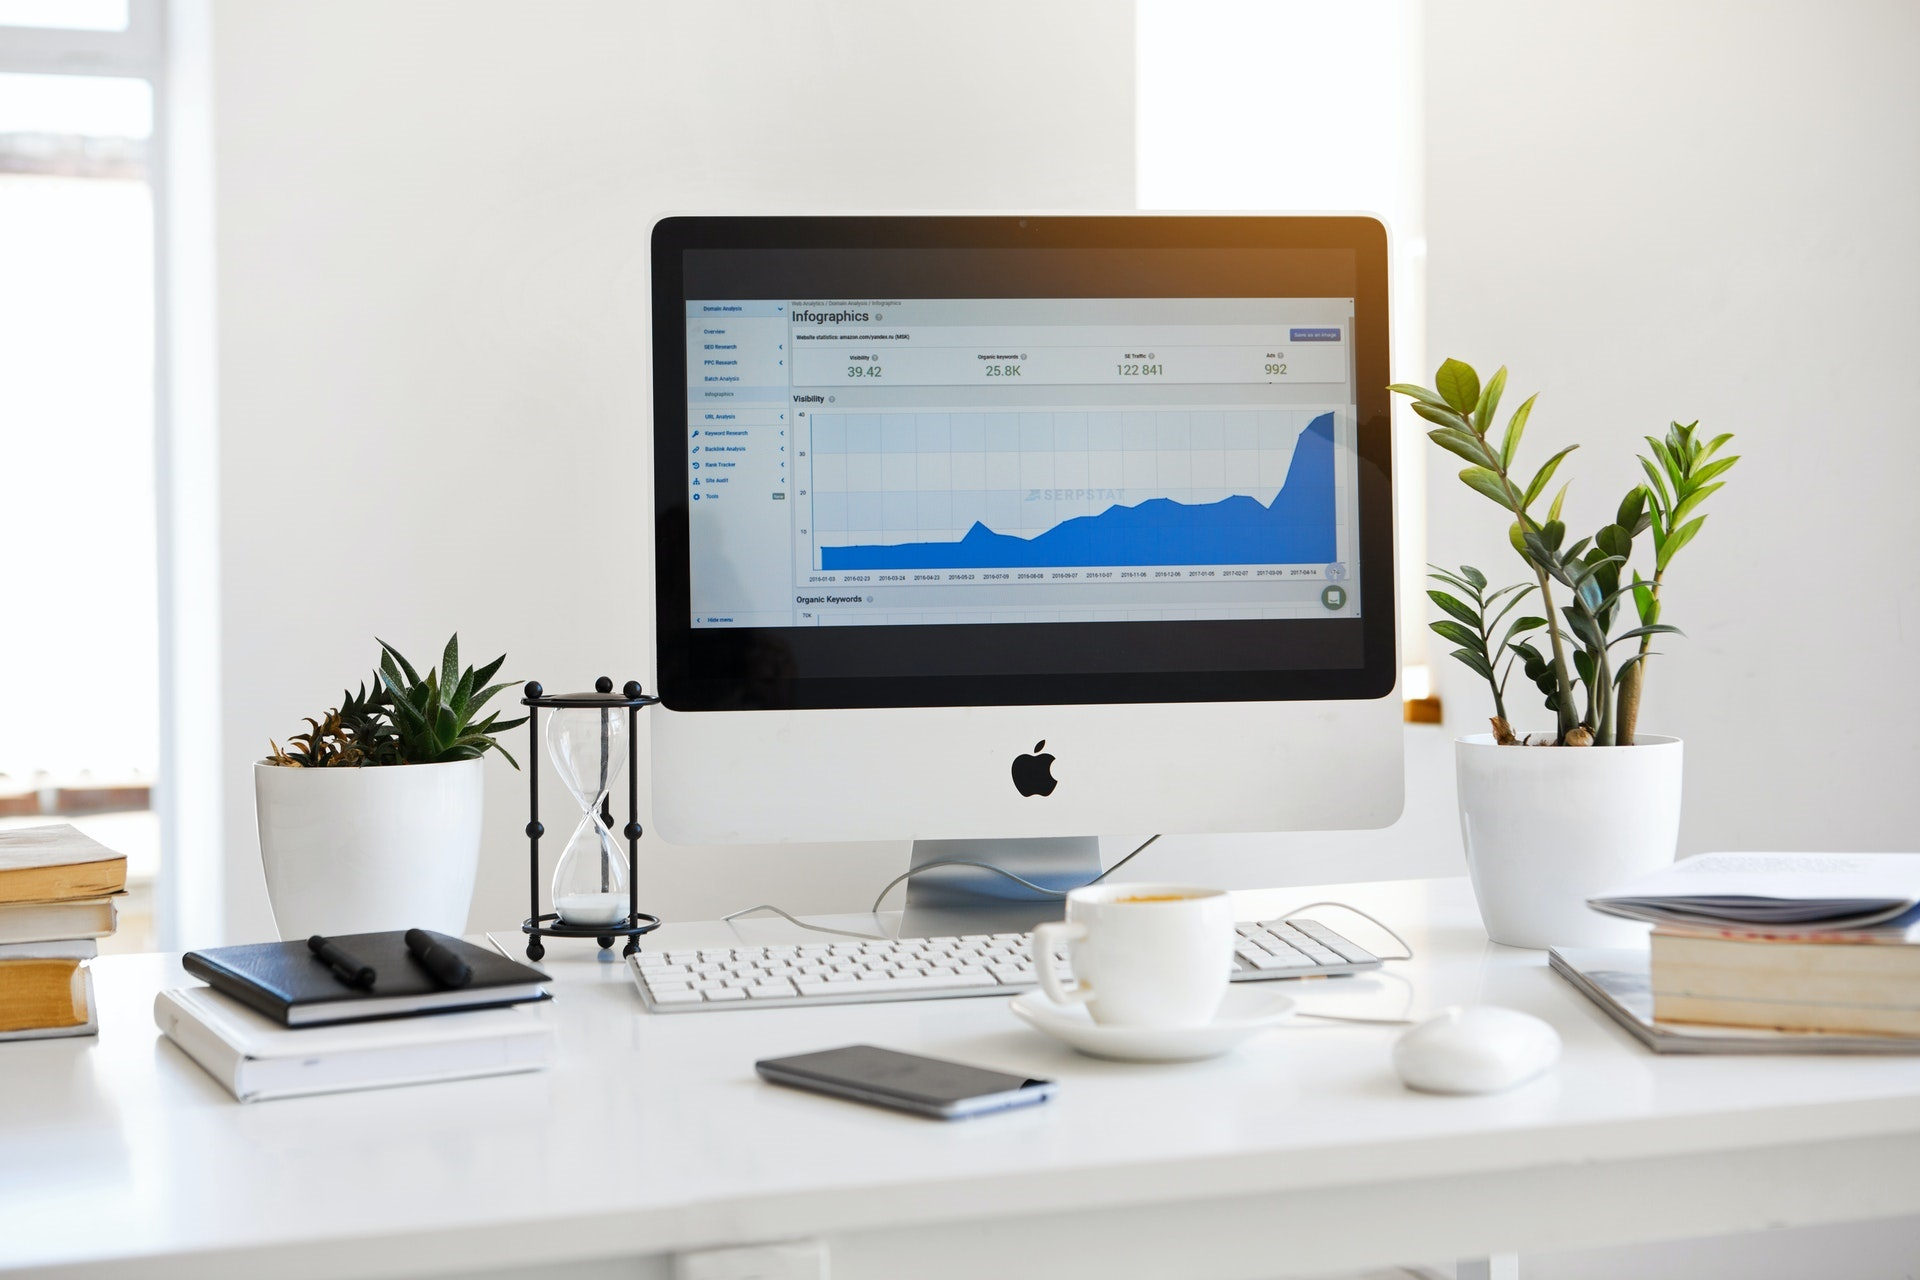 How do you build customer relationships while working from home